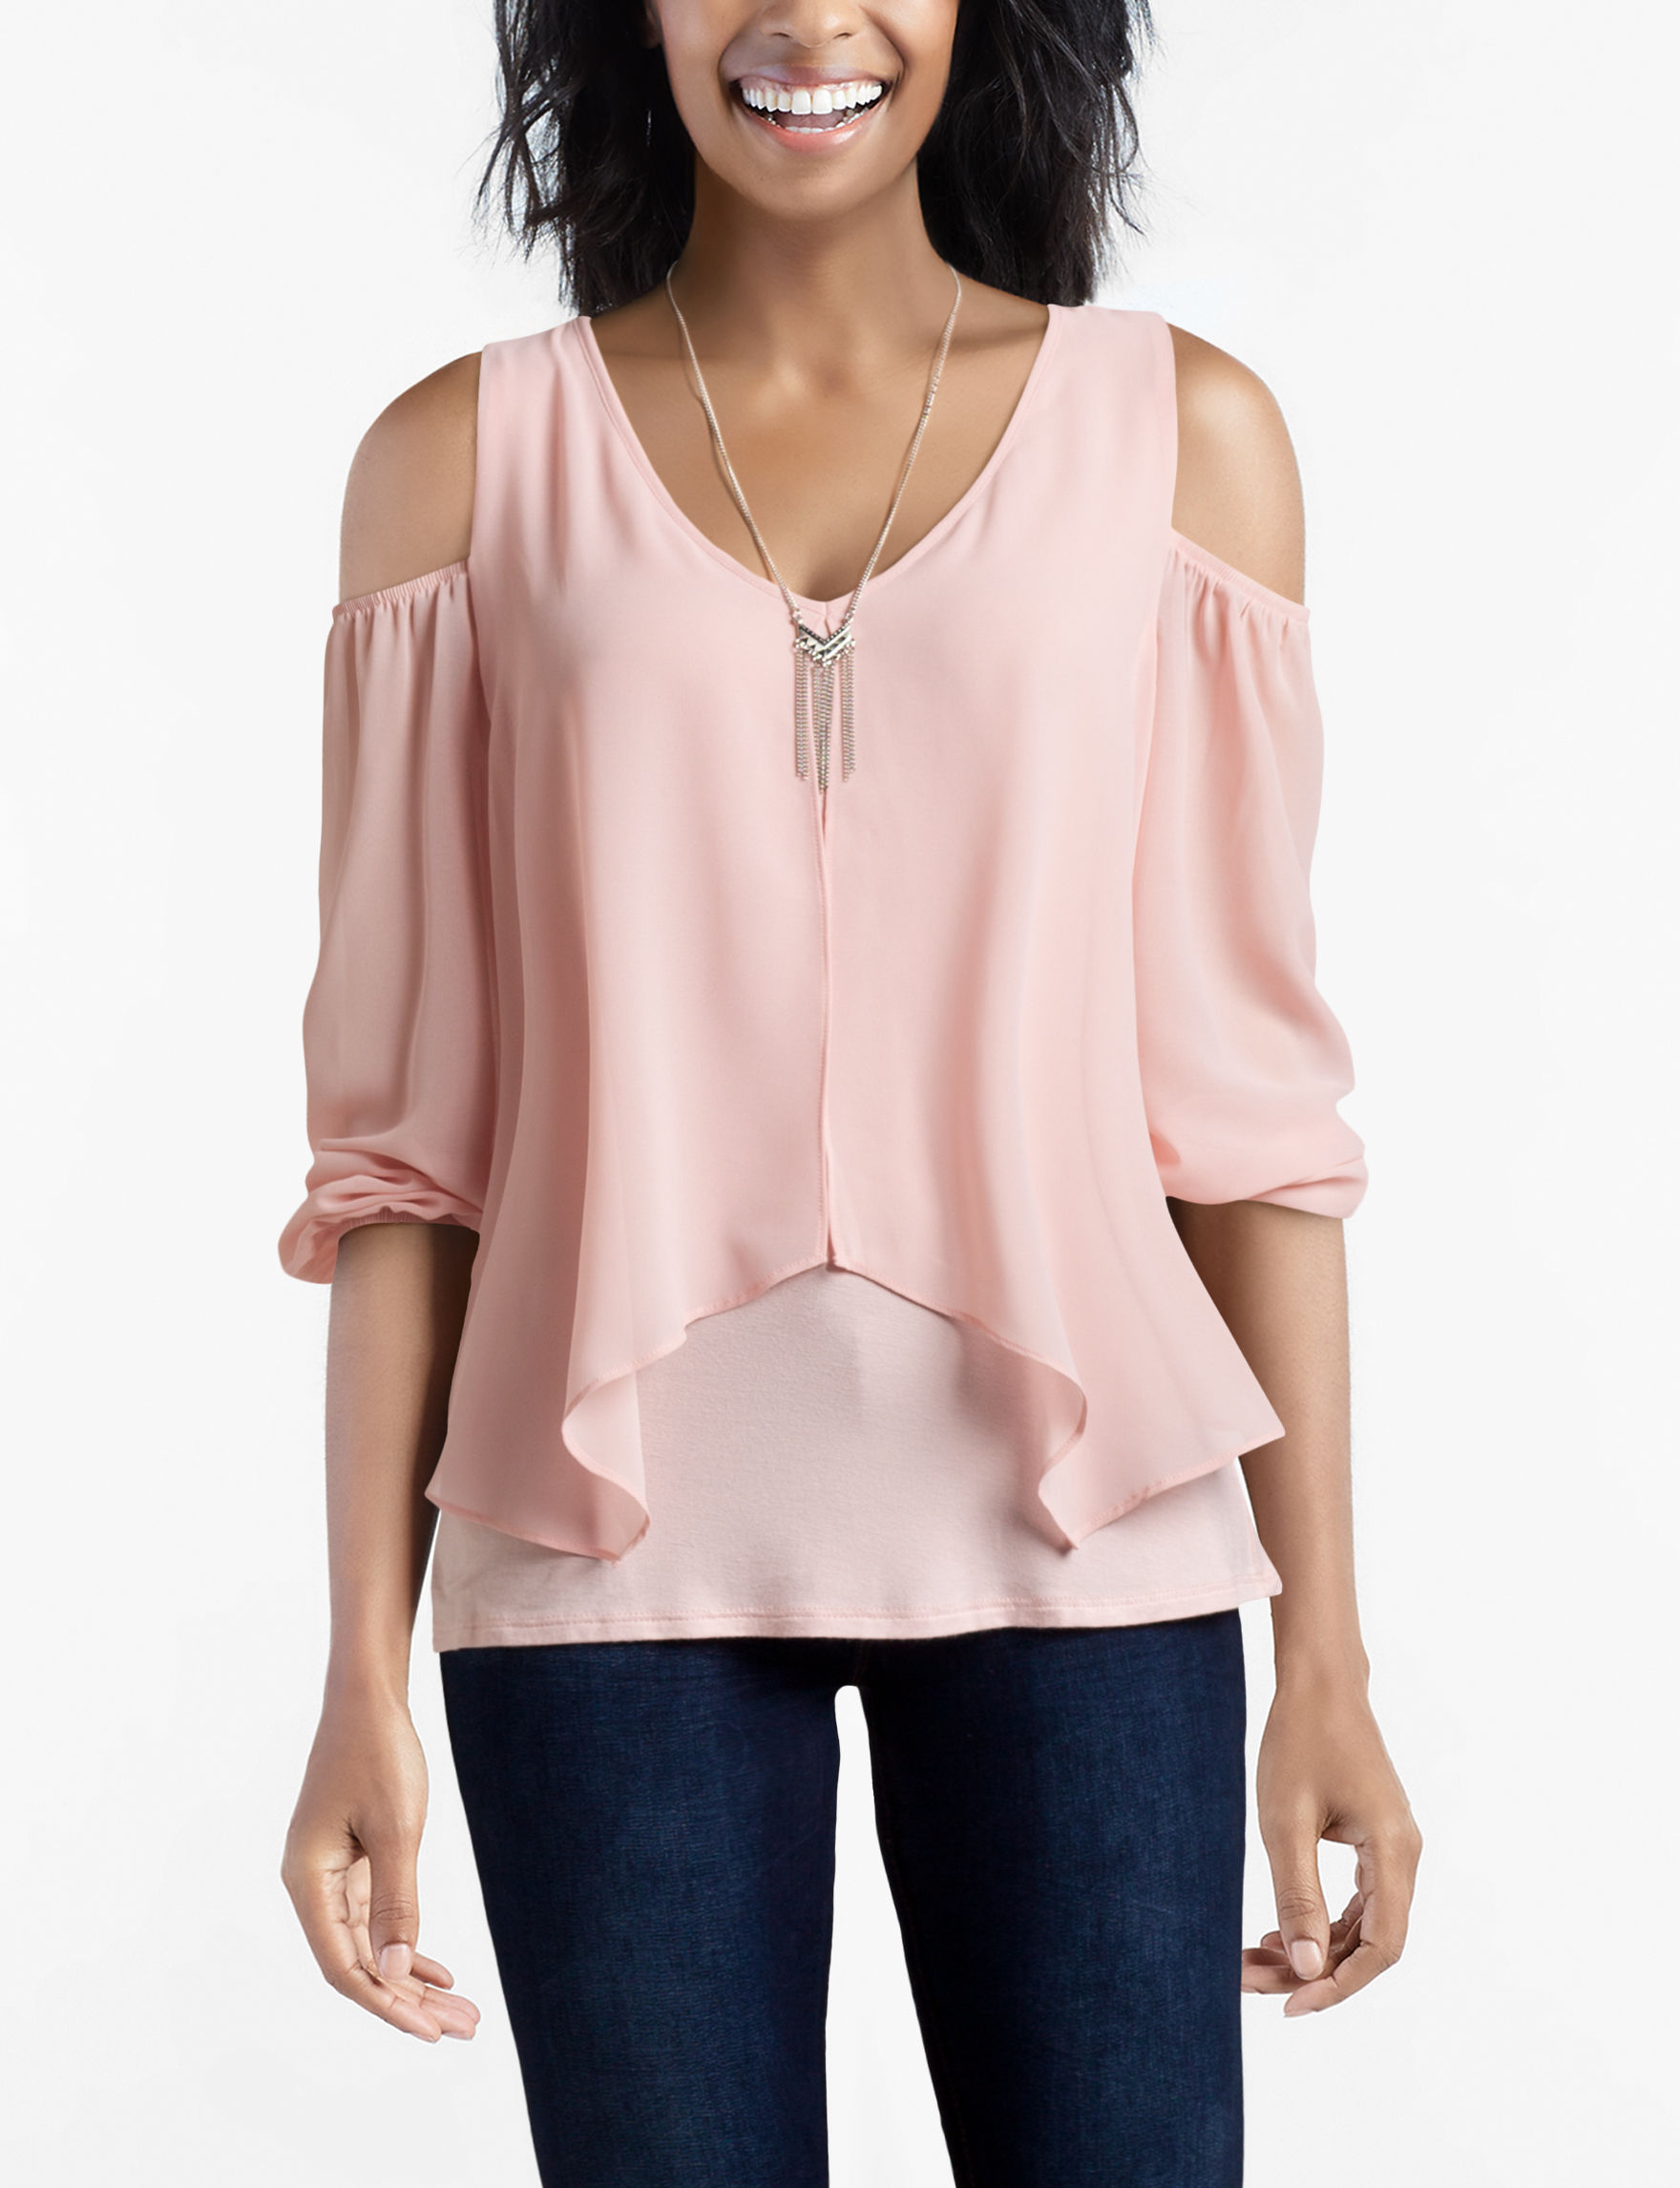 A. Byer Pink Everyday & Casual Shirts & Blouses